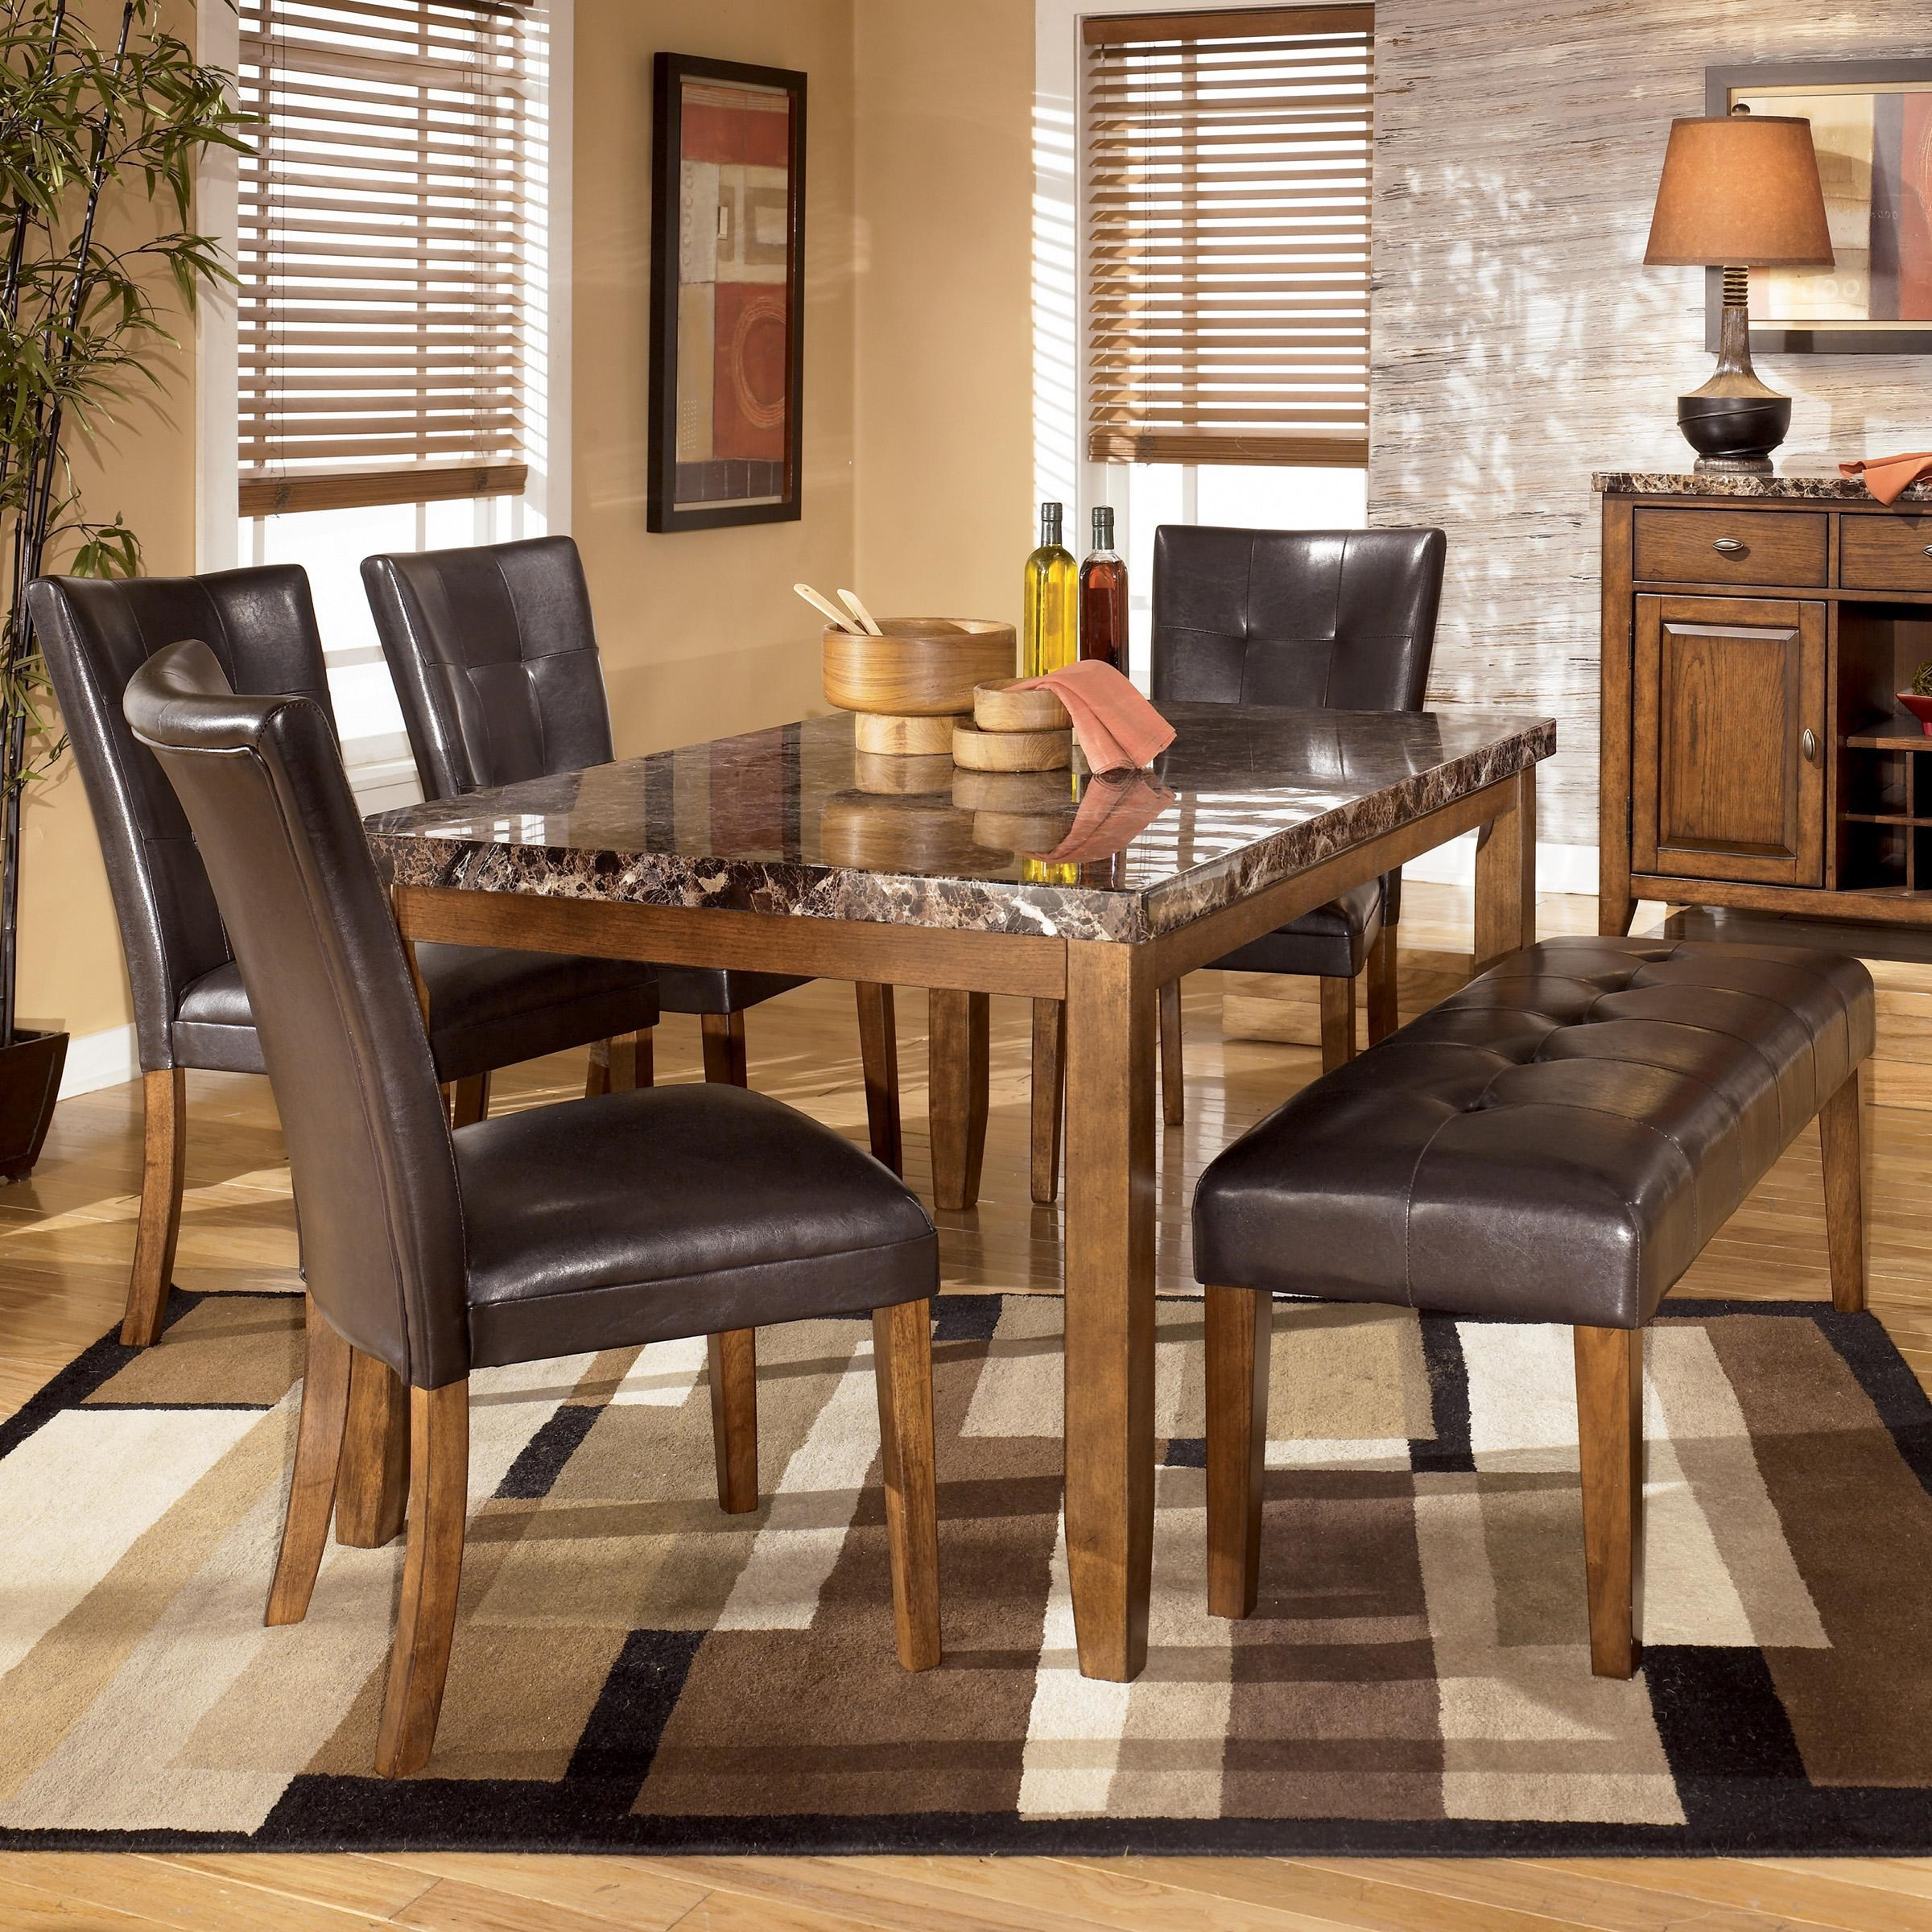 Signature Design By Ashley Lacey6 Piece Dining Table, Chairs, U0026 Bench Set  ...